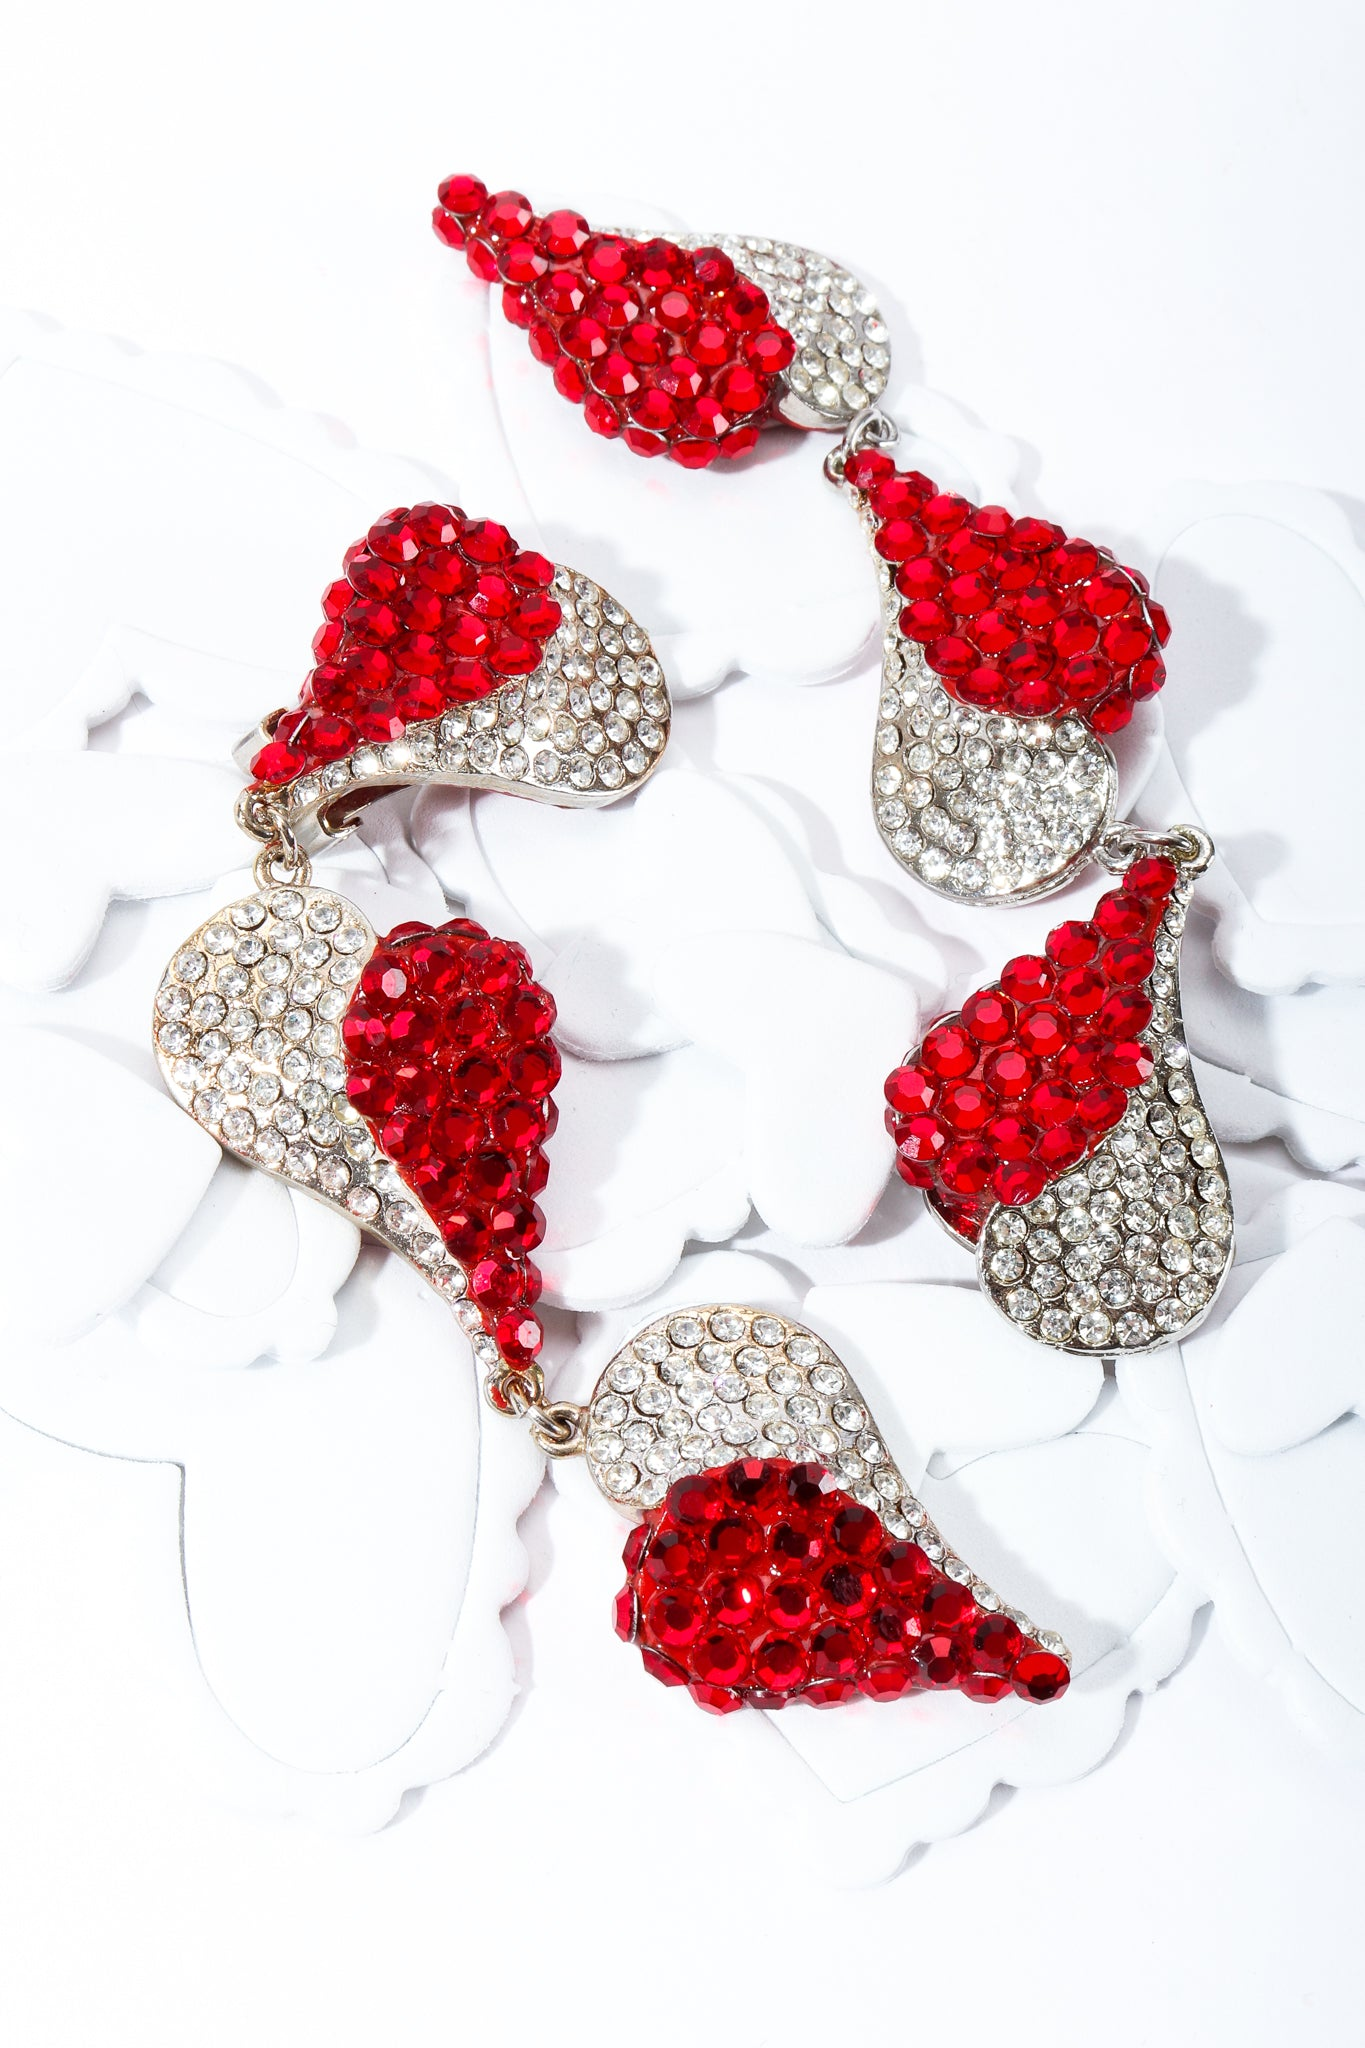 Red and Crystal rhinestone Falling Heart earrings on white heart shapes at Recess Los Angeles